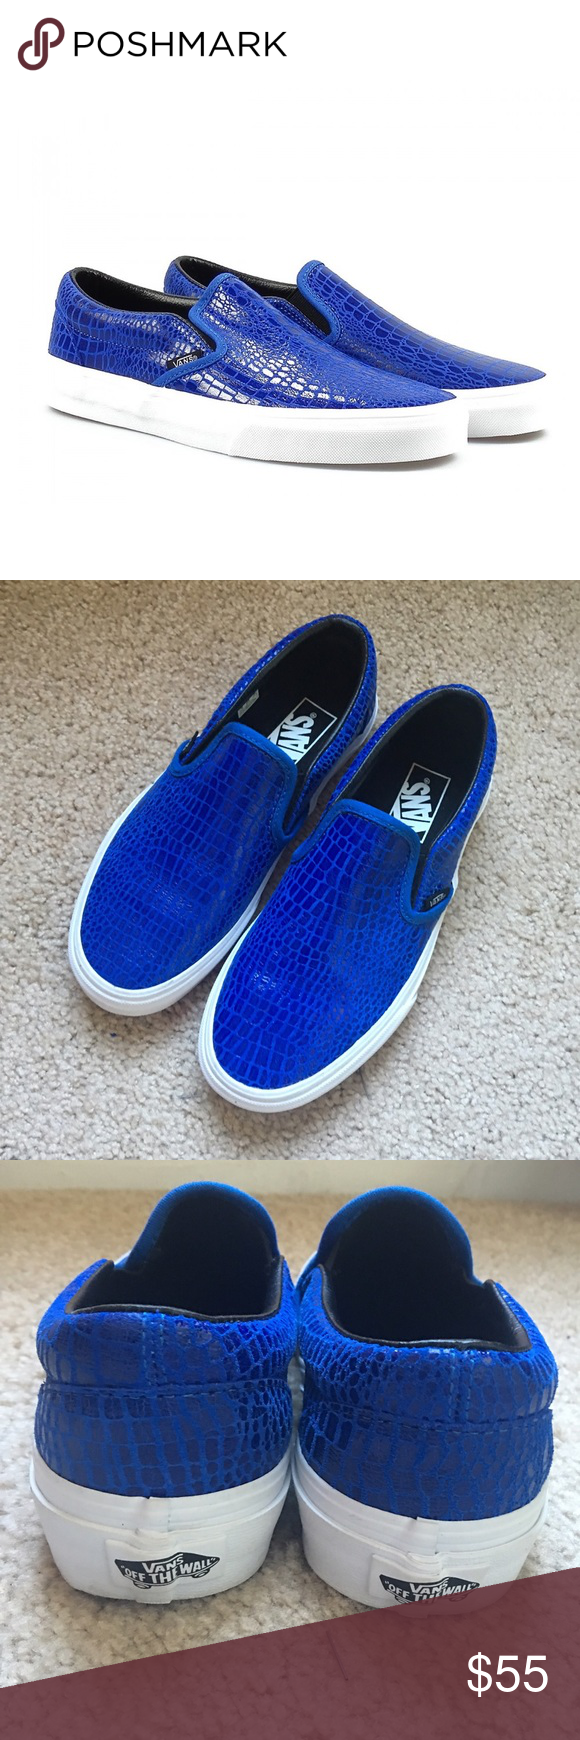 VANS royal blue leather sz: 7 Worn once, brand new condition